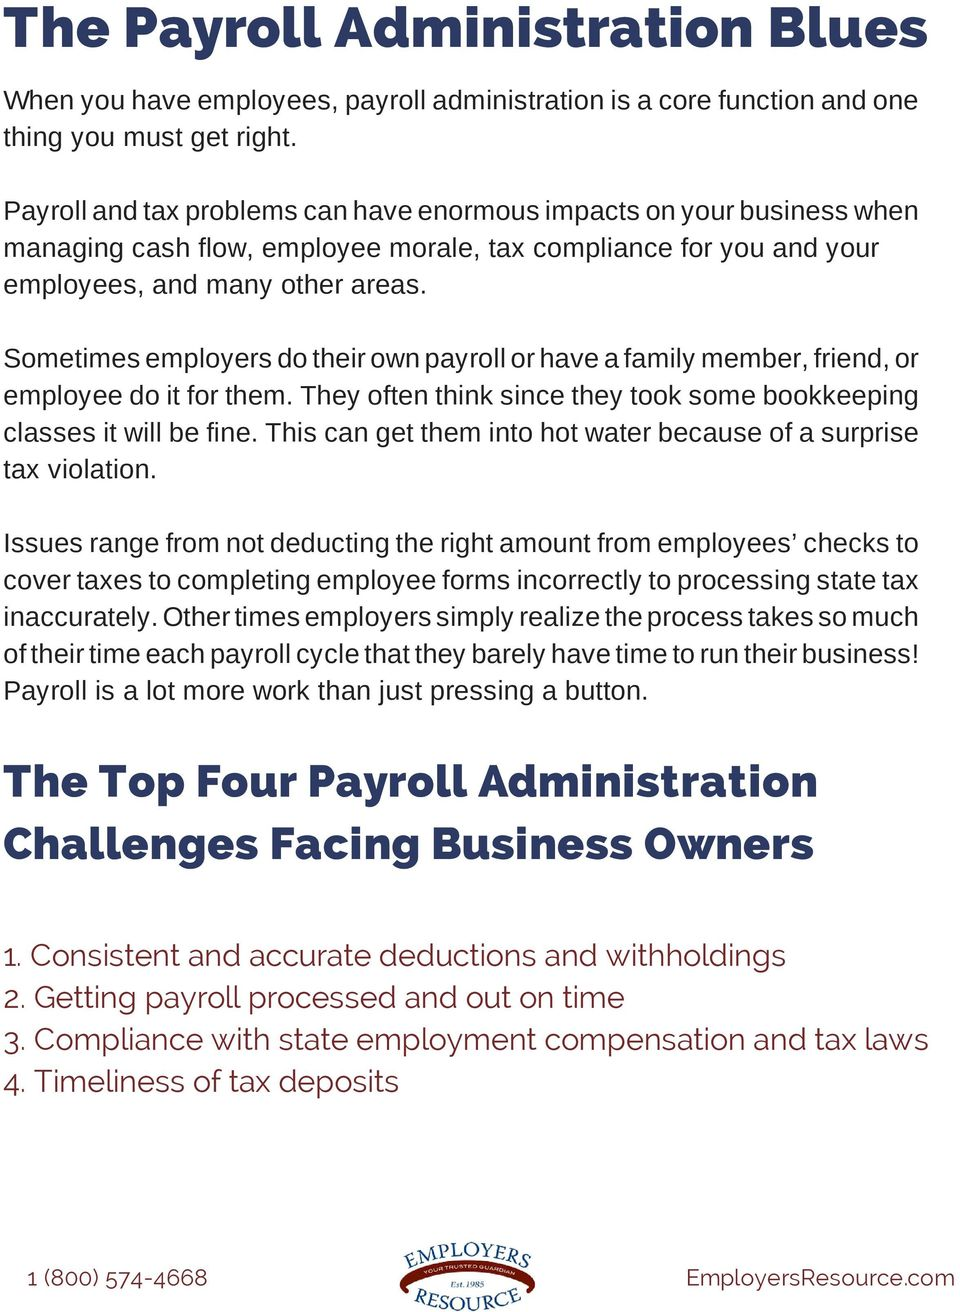 Sometimes employers do their own payroll or have a family member, friend, or employee do it for them. They often think since they took some bookkeeping classes it will be fine.